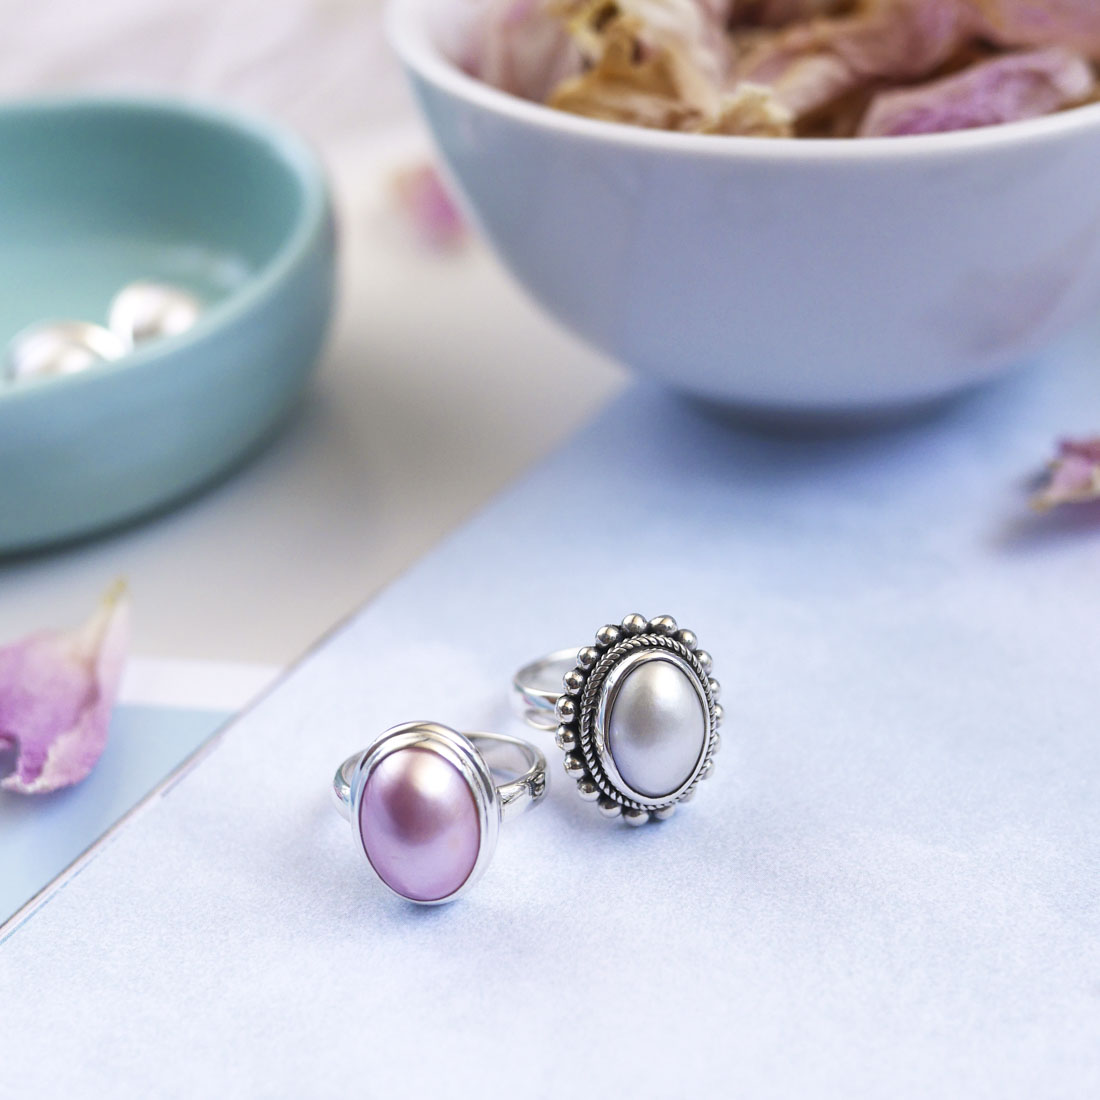 colour pop pearl jewellery product photo